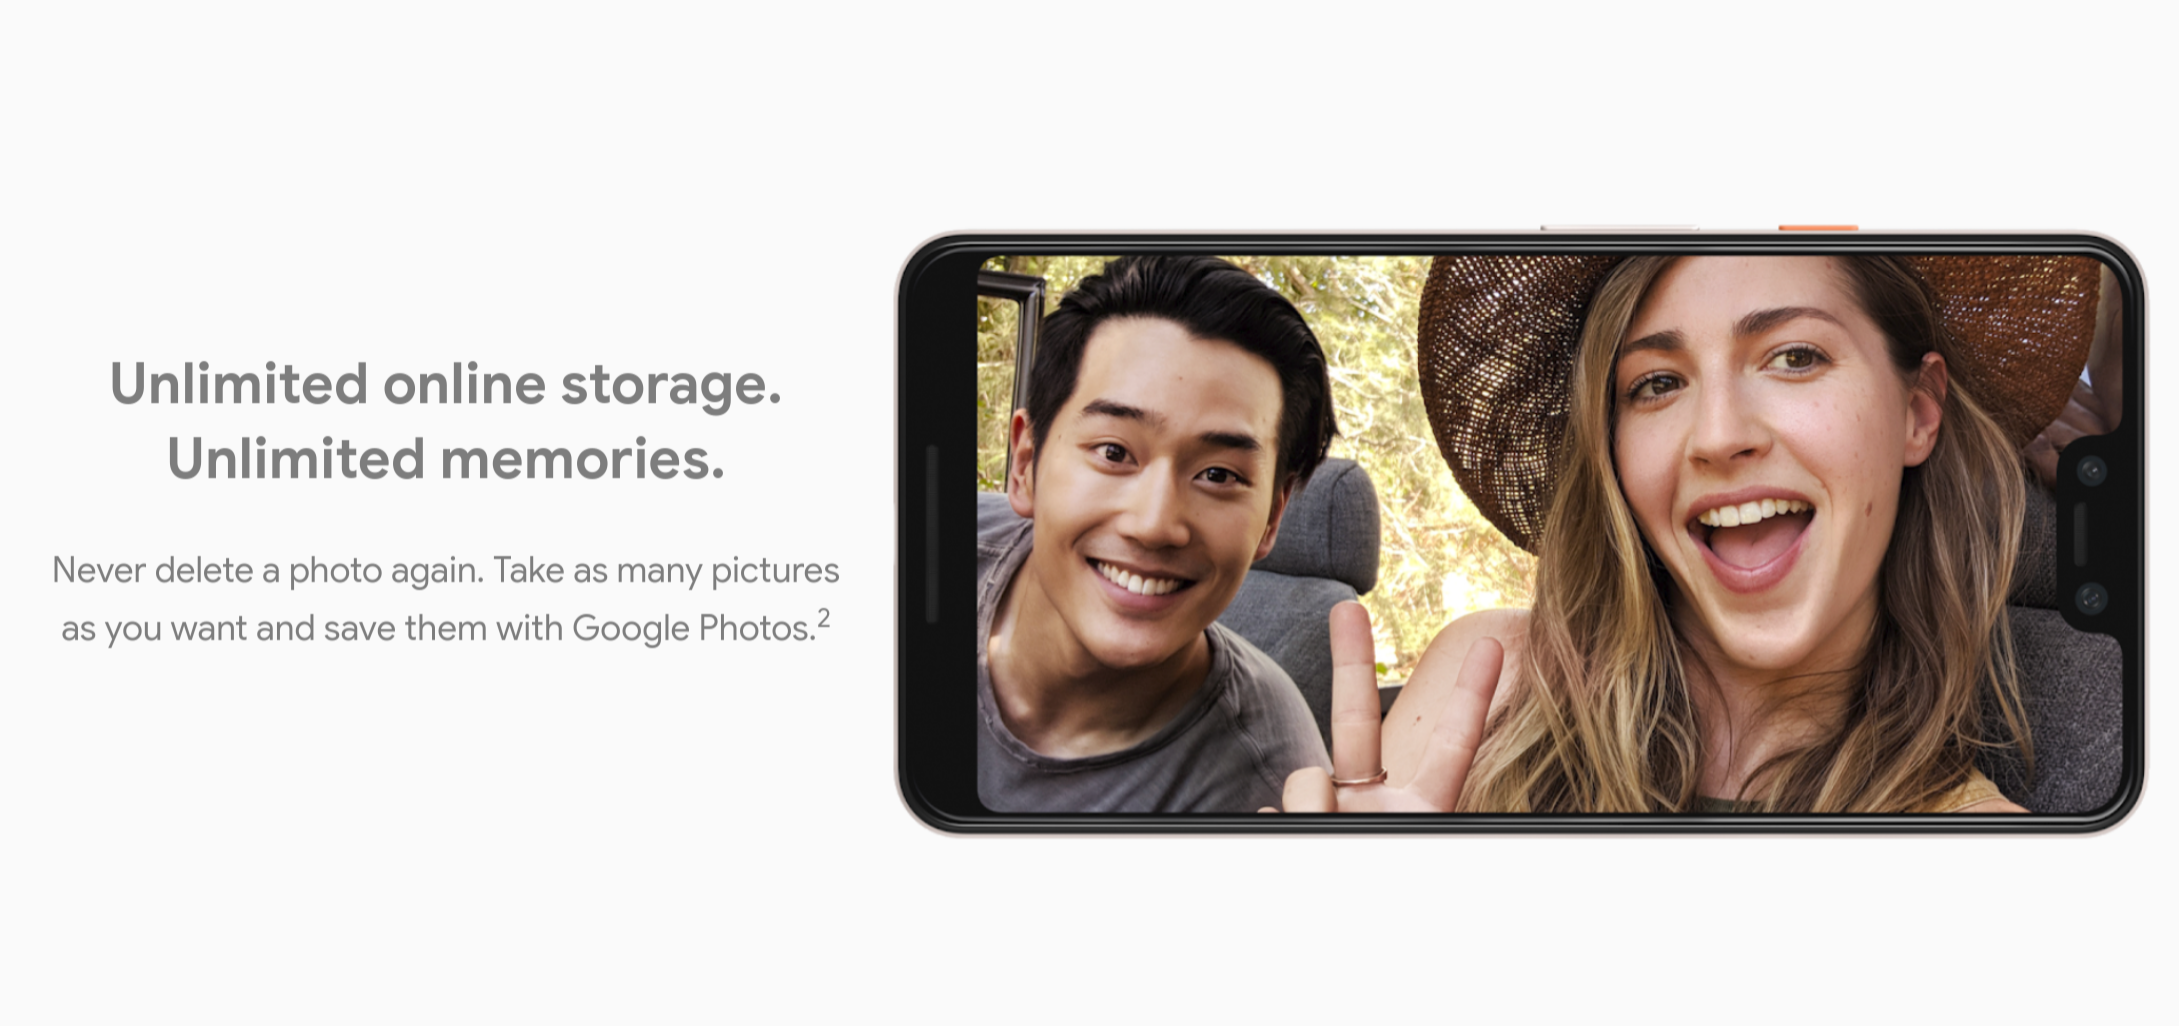 Pixel 3 owners get free full-size photo uploads until